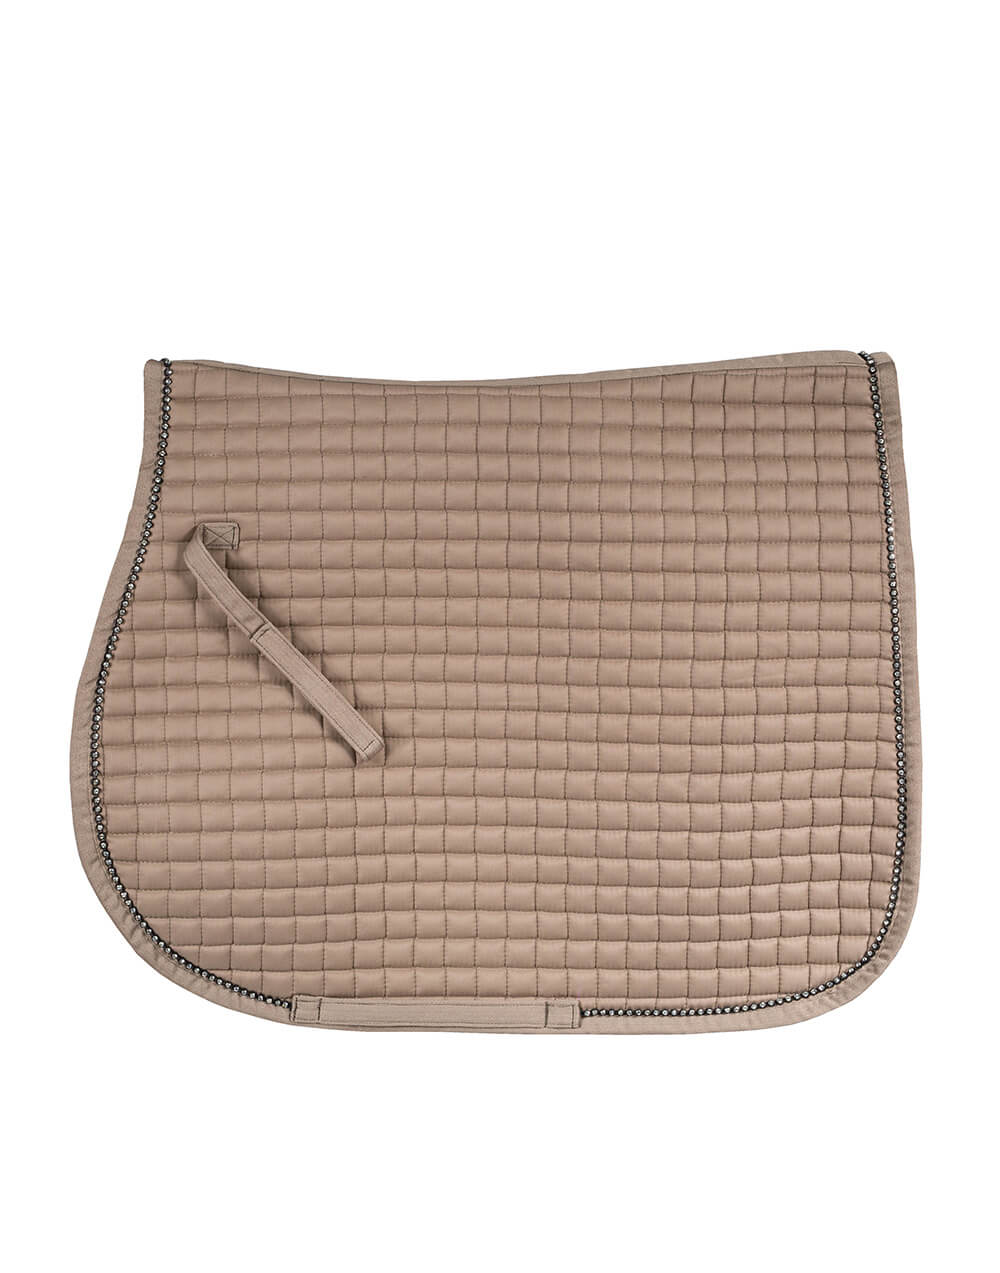 High quality small quilted allround horse riding numnah with crystal trim, quick dry lining and well shaped fit